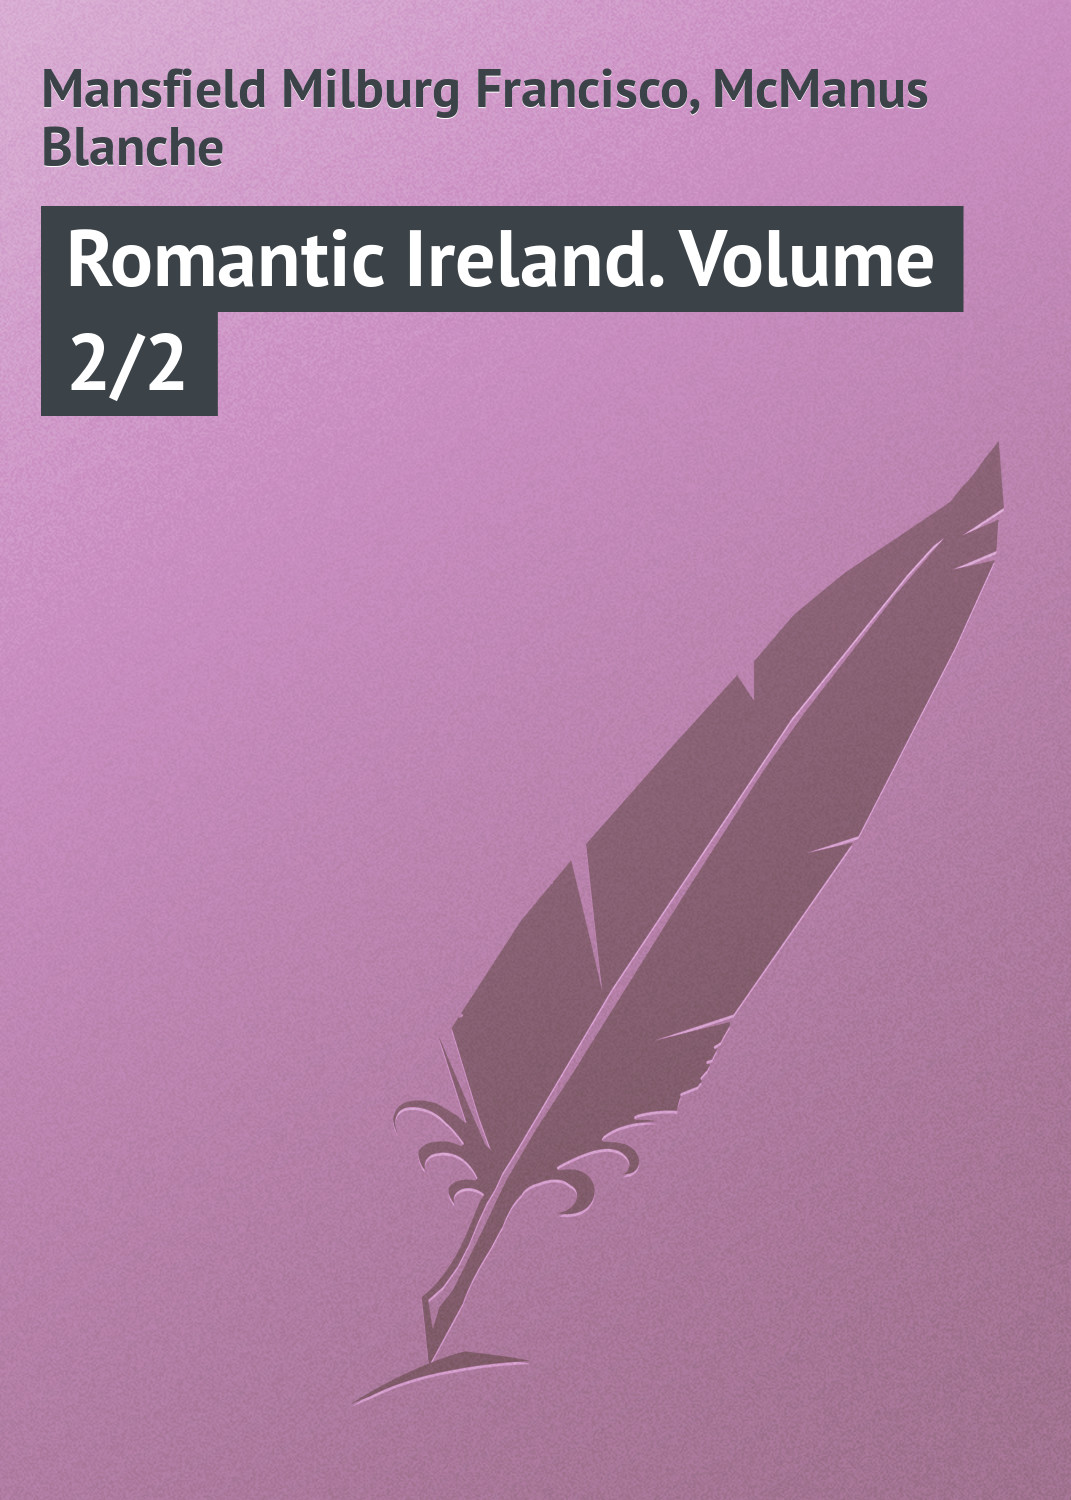 Mansfield Milburg Francisco Romantic Ireland. Volume 2/2